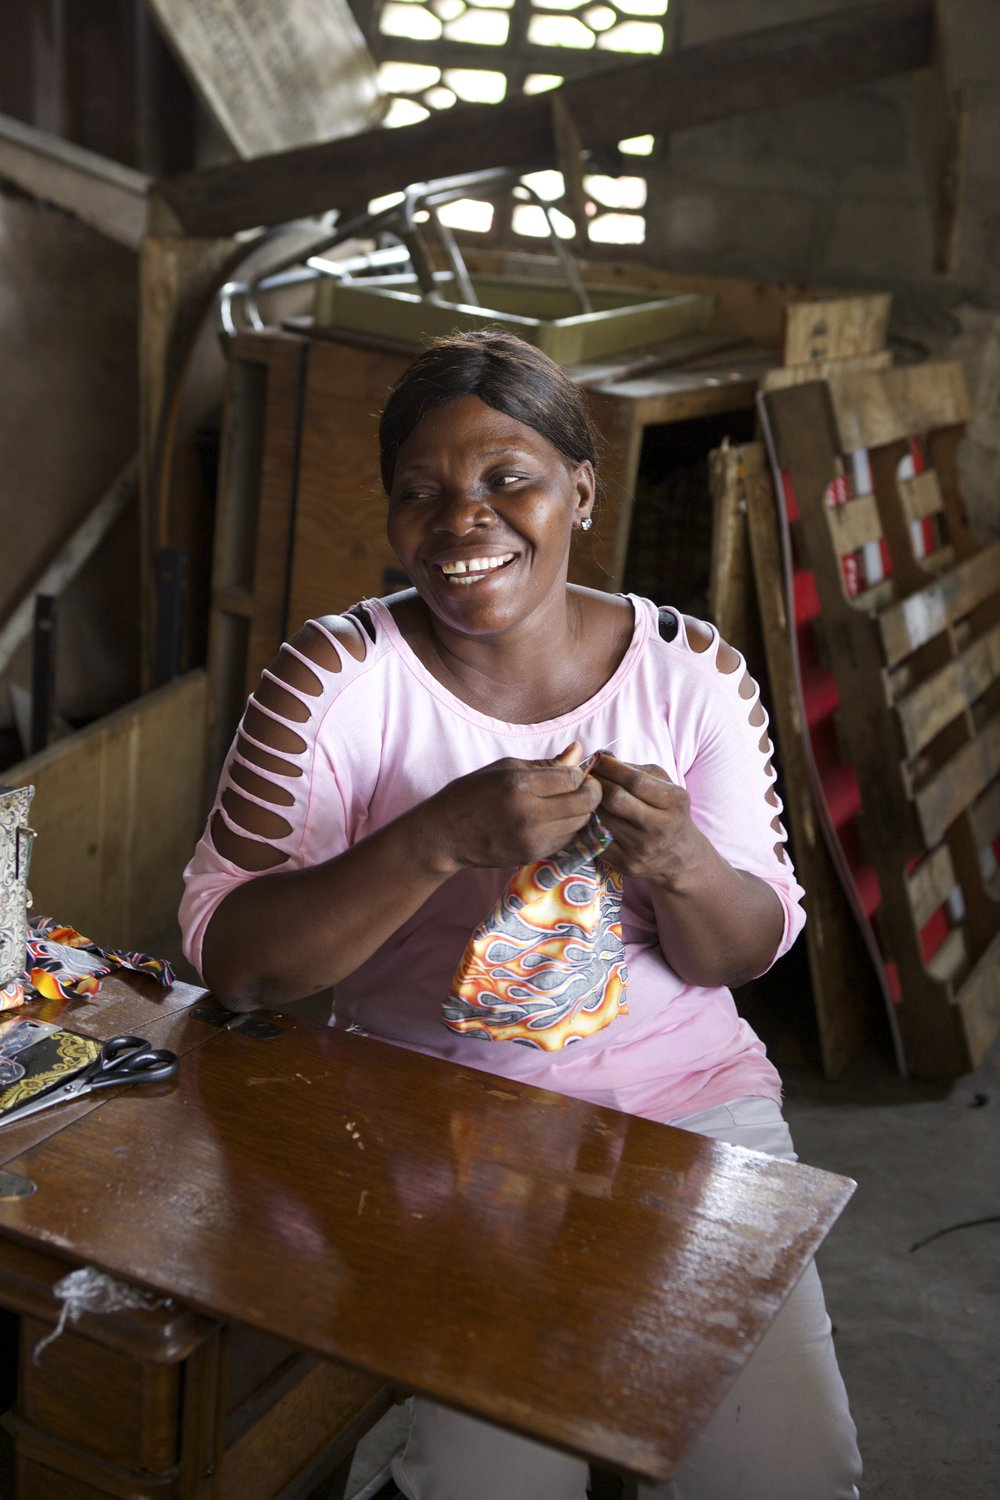 Marie, above, wants to earn money so her children can finish school, something a manipulative guardian prevented her from doing herself. Now, she can gain dignity and respect through her work.